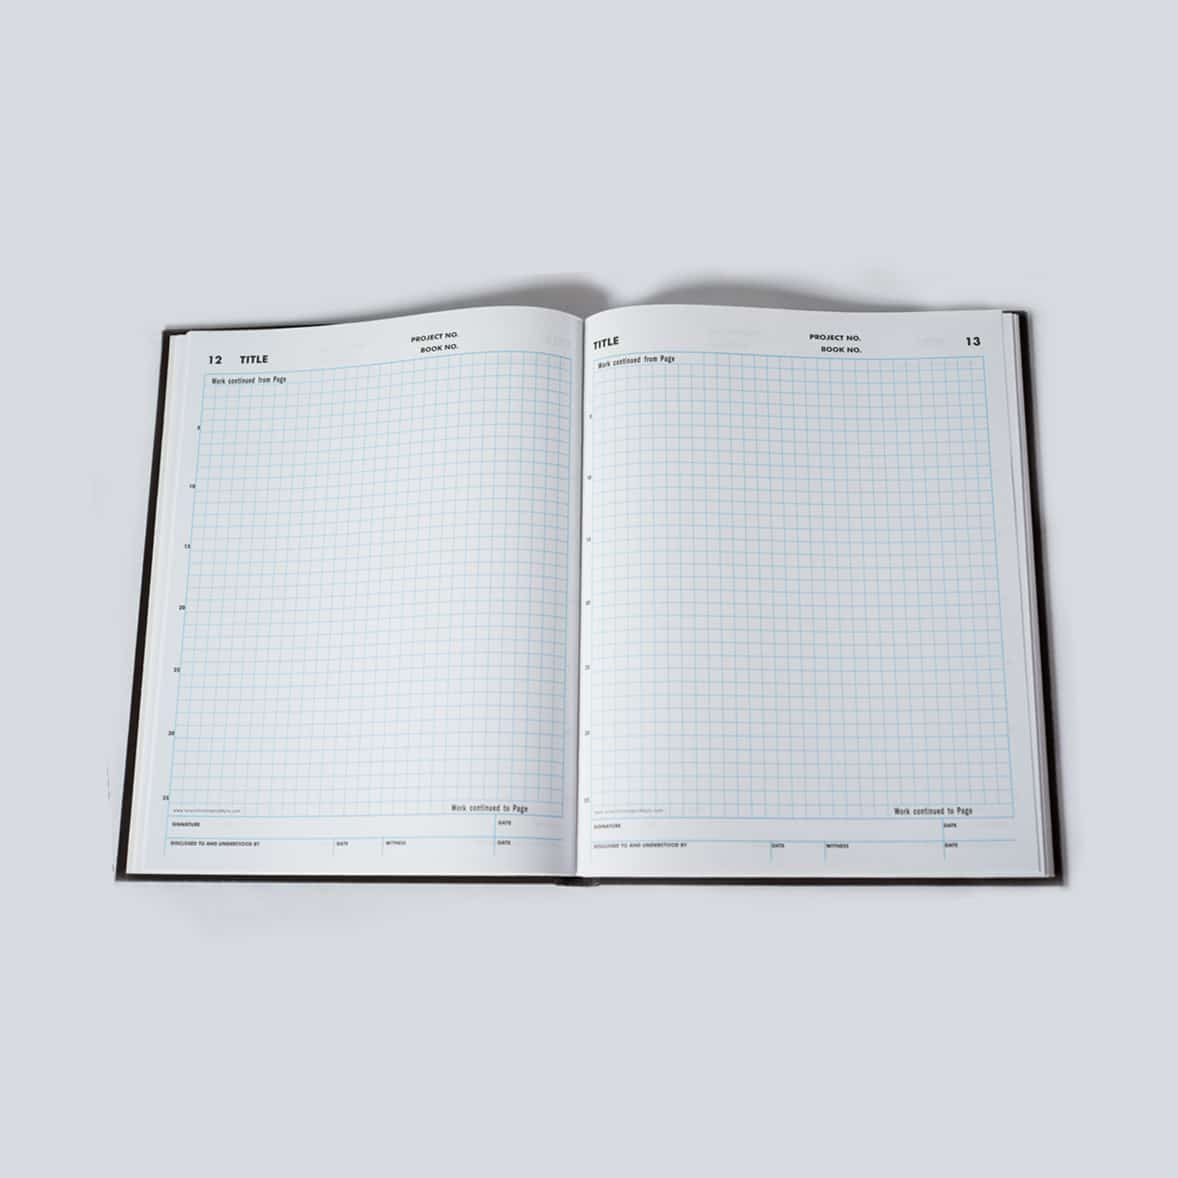 208 Page Grid Notebook Laboratory Notebook or Patent Related Research Notebook - Scientific Bindery